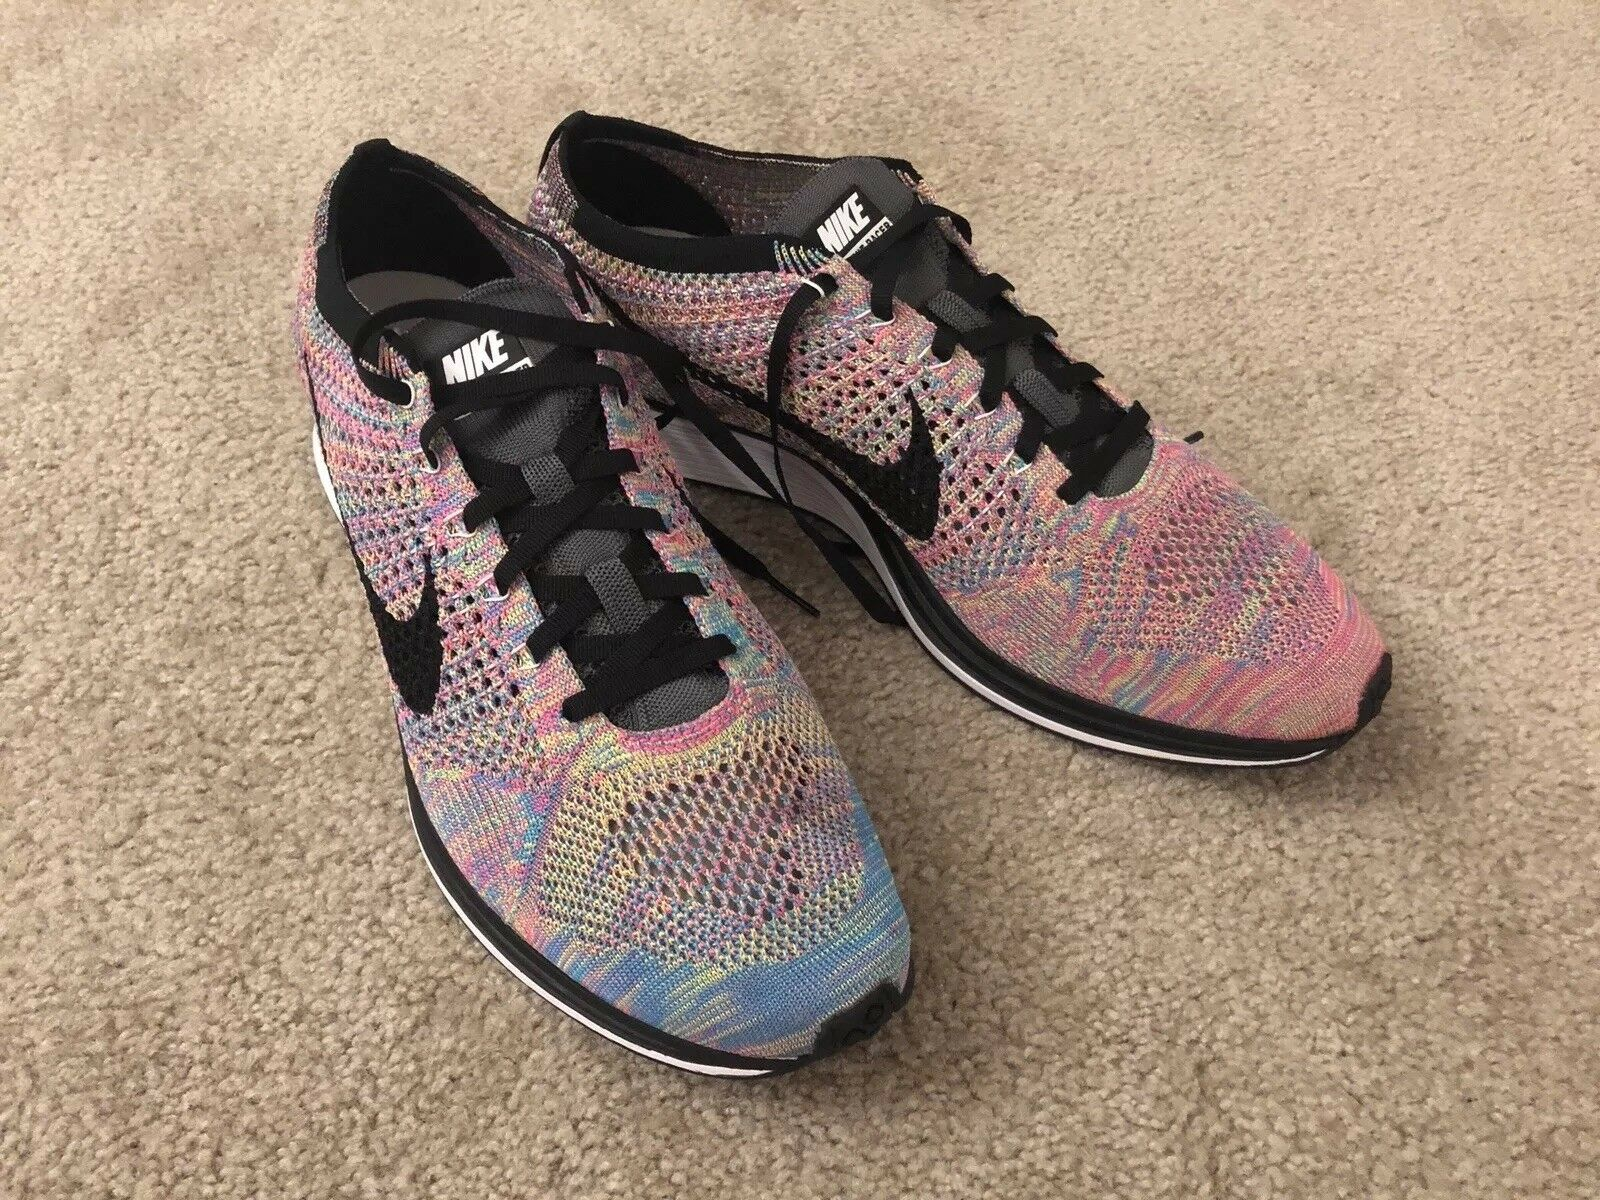 Nike Flyknit Racer 3.0 Multi Color size 13. New. No box. Casual wild